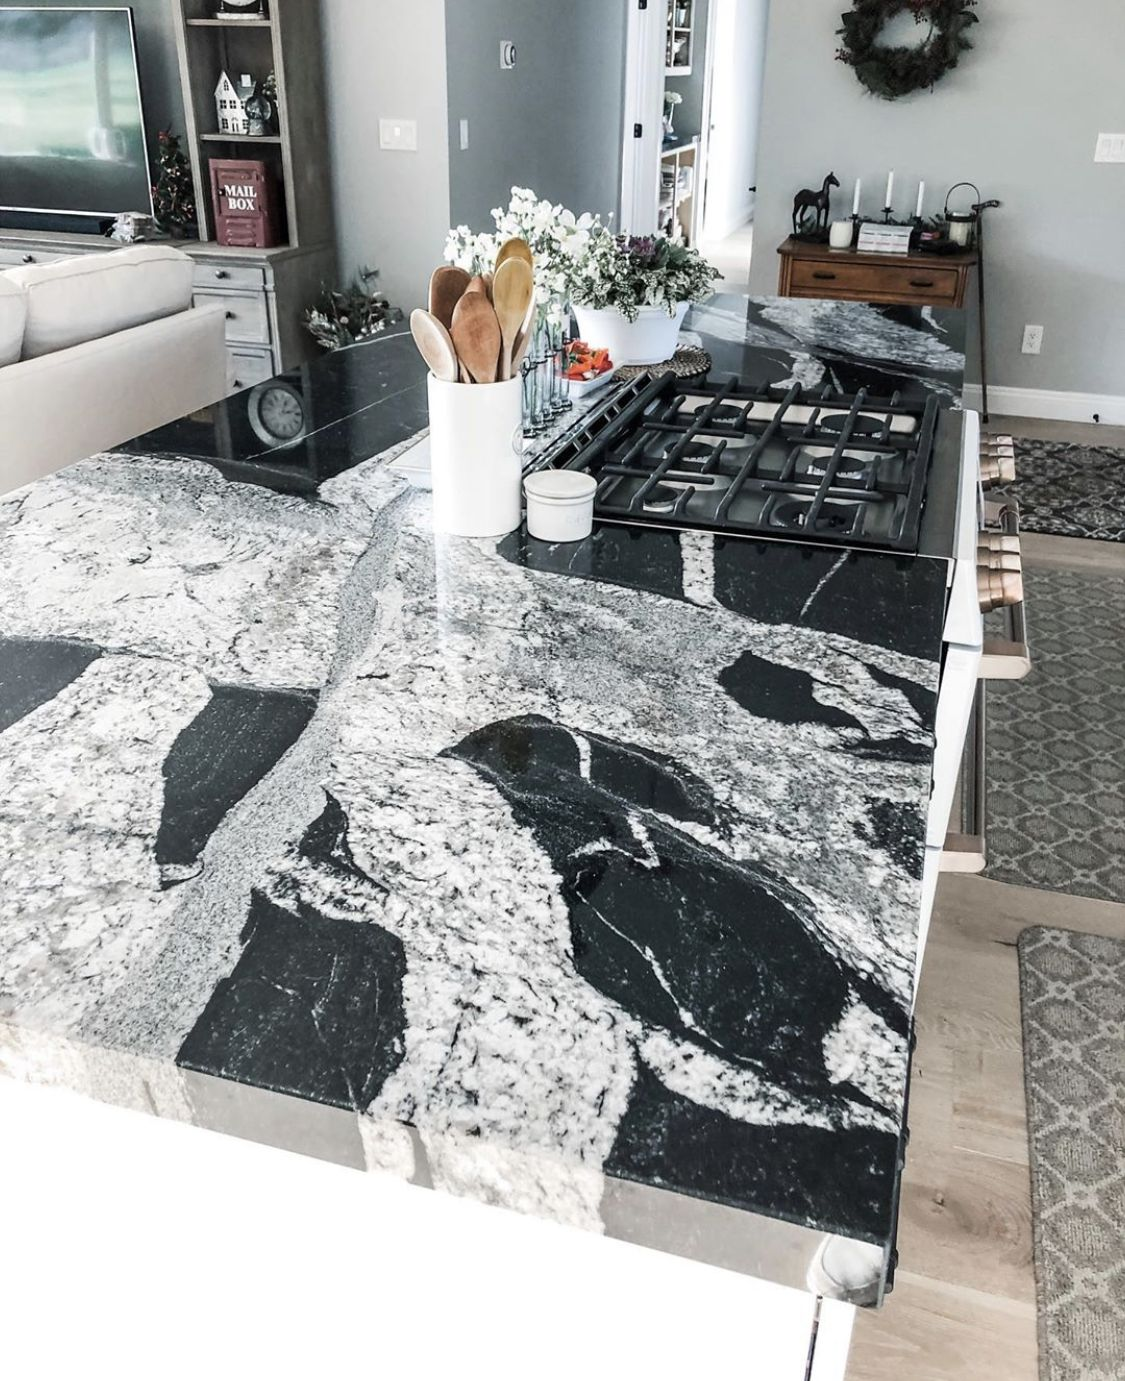 Rocky Tops Custom Countertops Granite Countertop Chattanooga At Rocky Tops Is The Best Choi In 2020 Custom Countertops Engineered Stone Countertops Granite Countertops